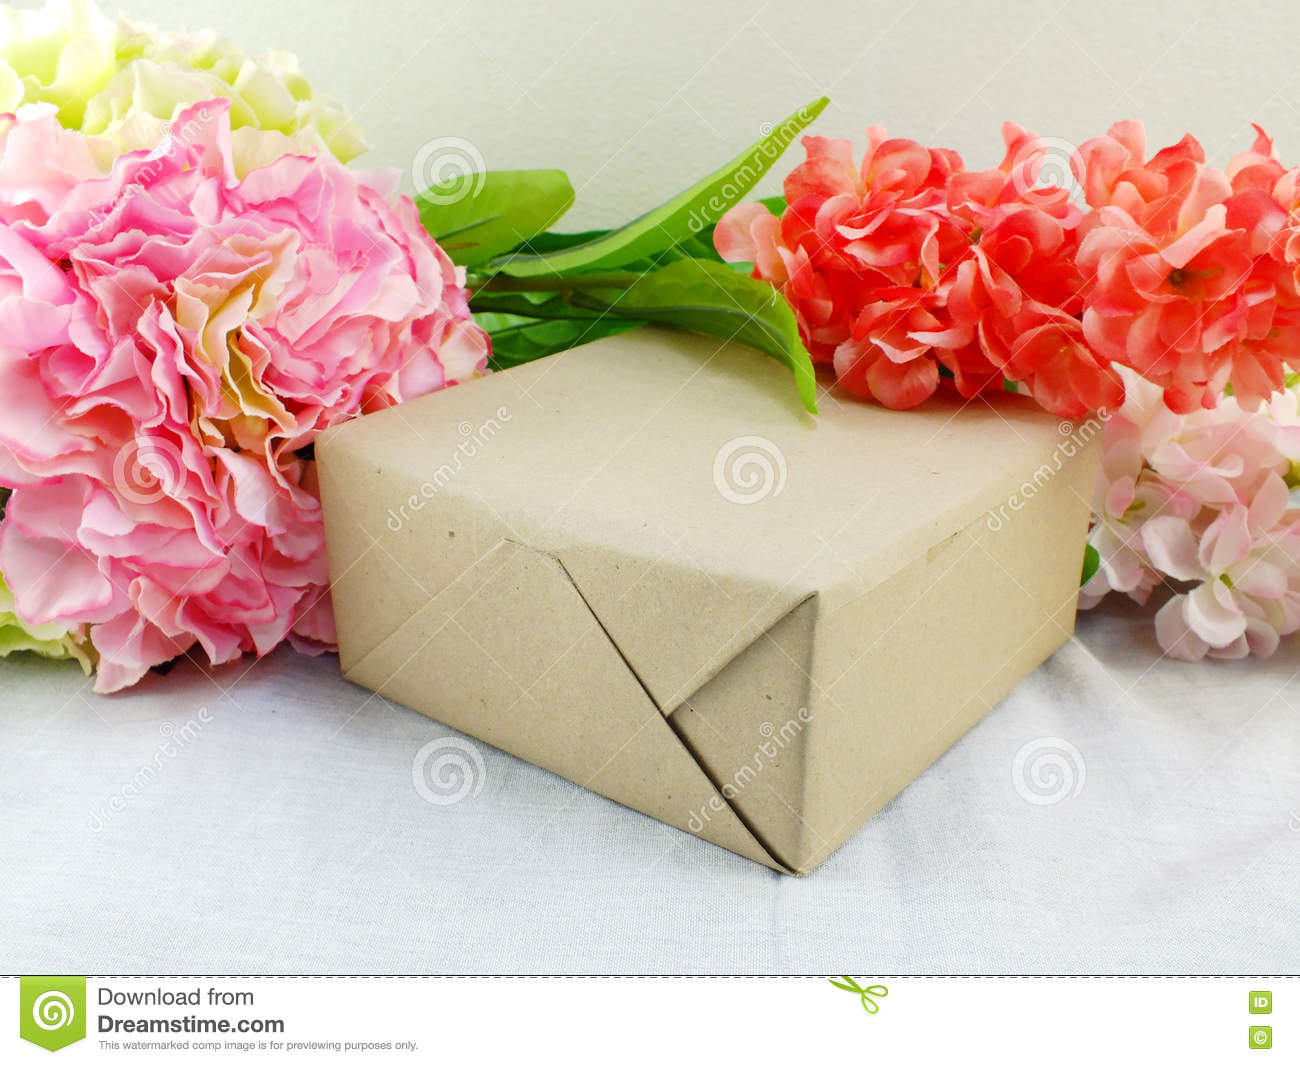 Gifts And Beautiful Bouquet Of Flowers For Mother's Day